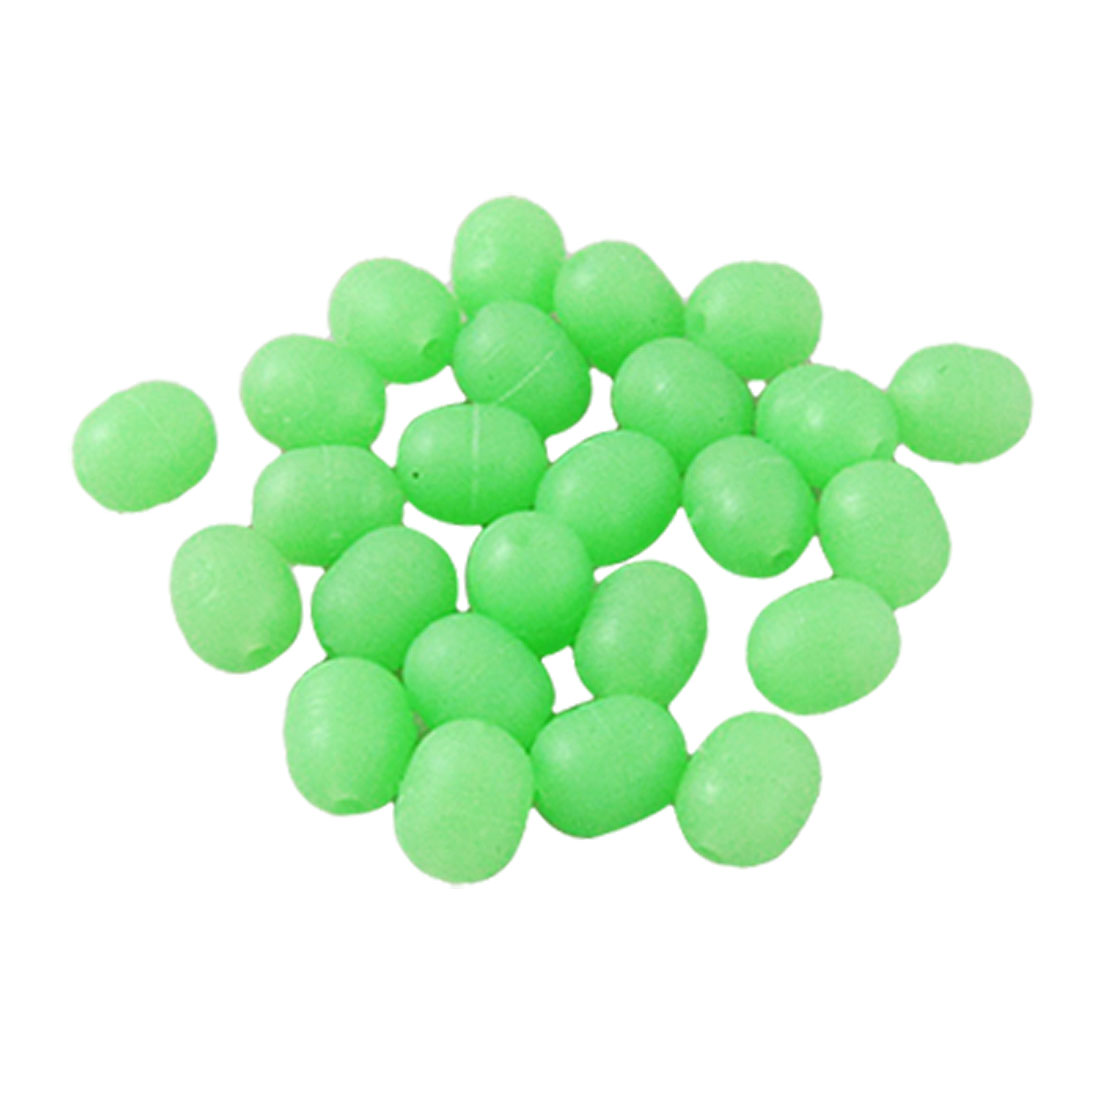 25 Pcs 6.4 x 7.3mm Green Soft Plastic Mini Glow in Dark Fishing Beads